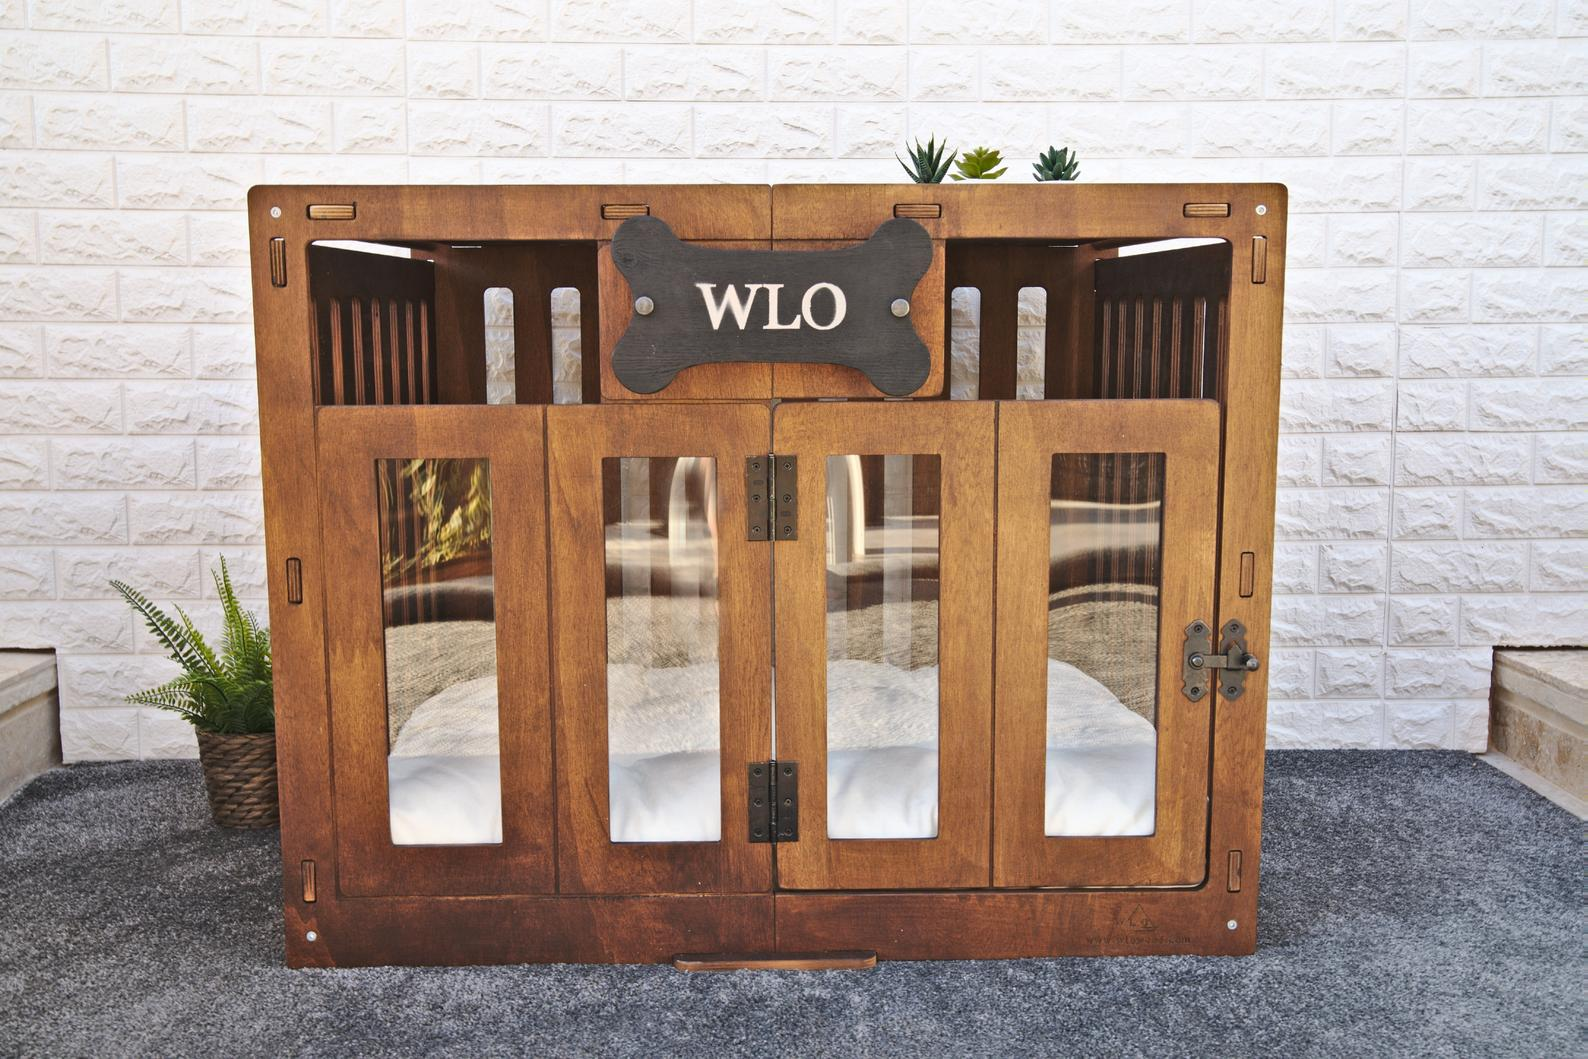 13 Practical Dog Crates for Big Dogs (up to XXXL) - Image via WLO Wood (Etsy) feat. Modern Dog House Crate (XXL – 51.2 inch)